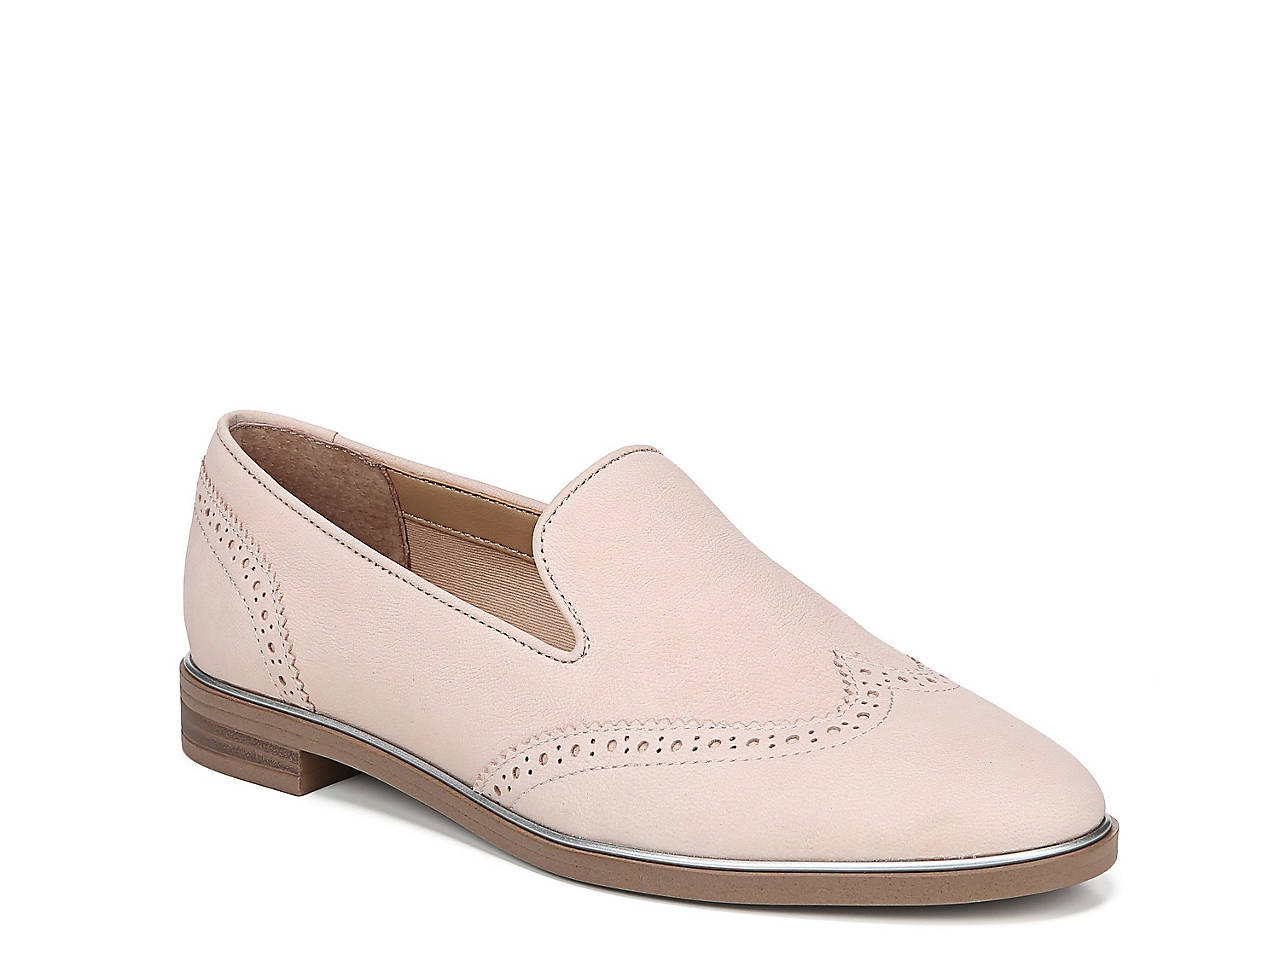 ed07e791490 Franco Sarto Haydrian Loafer Women s Shoes